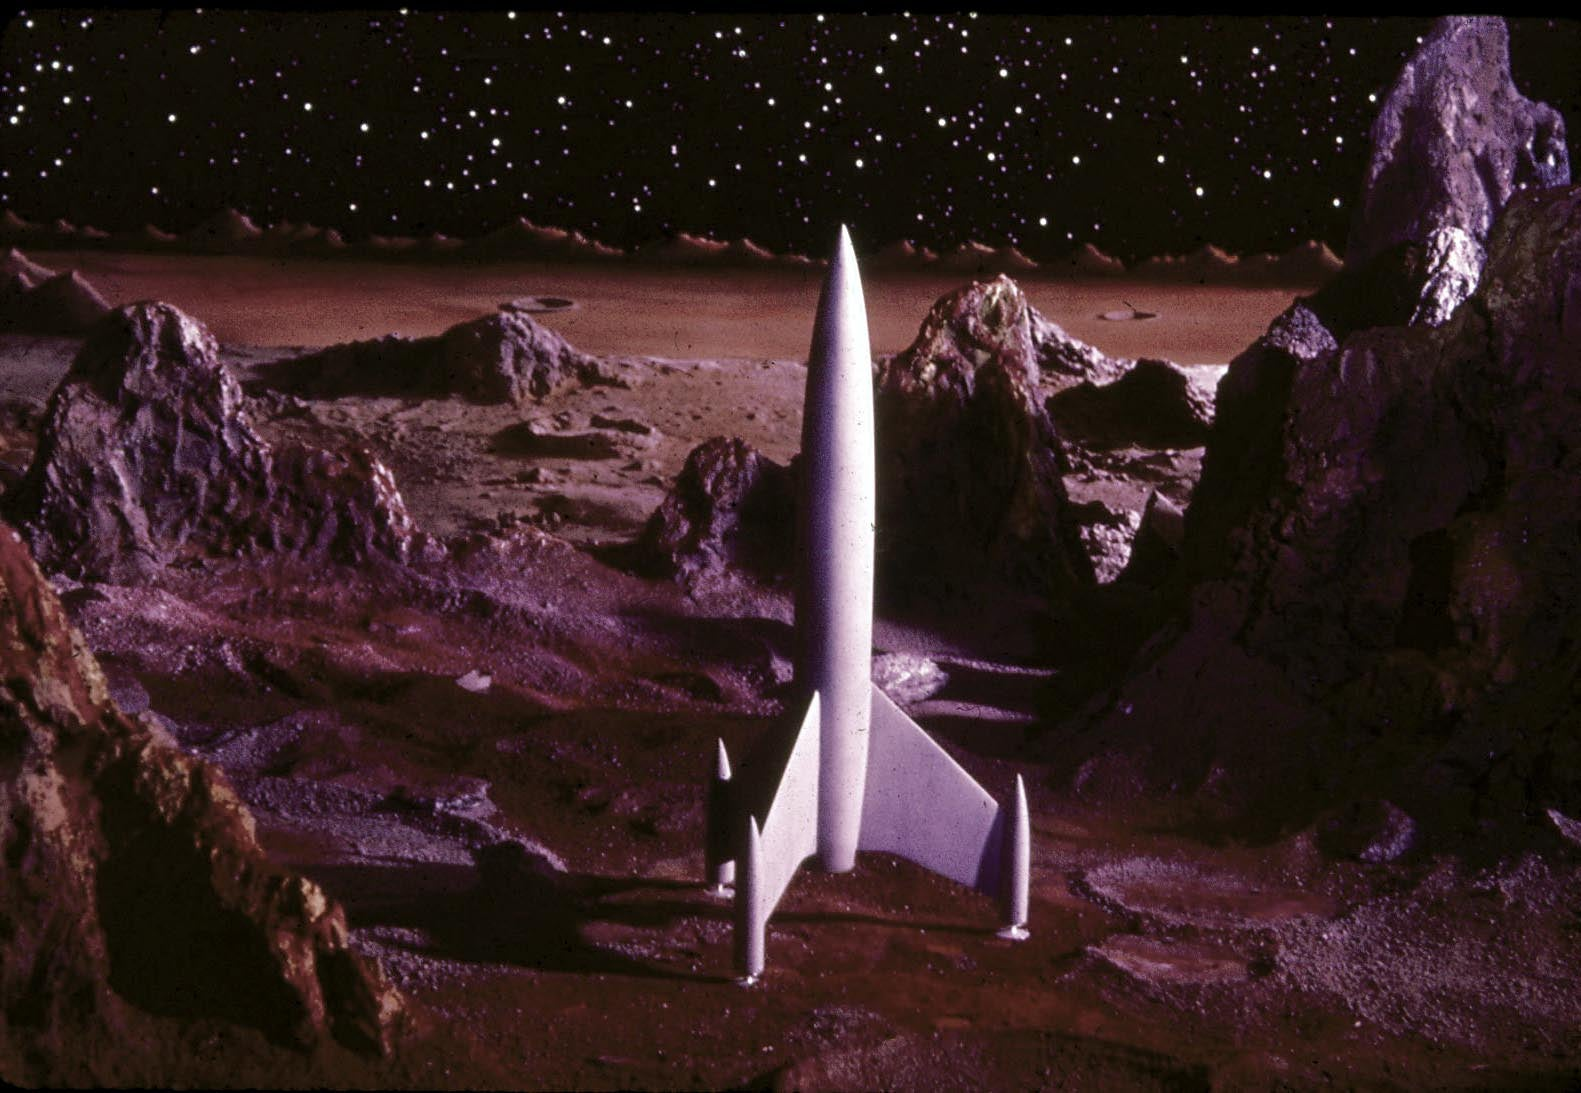 Scenes from the 1950s Space Movie That No One Saw